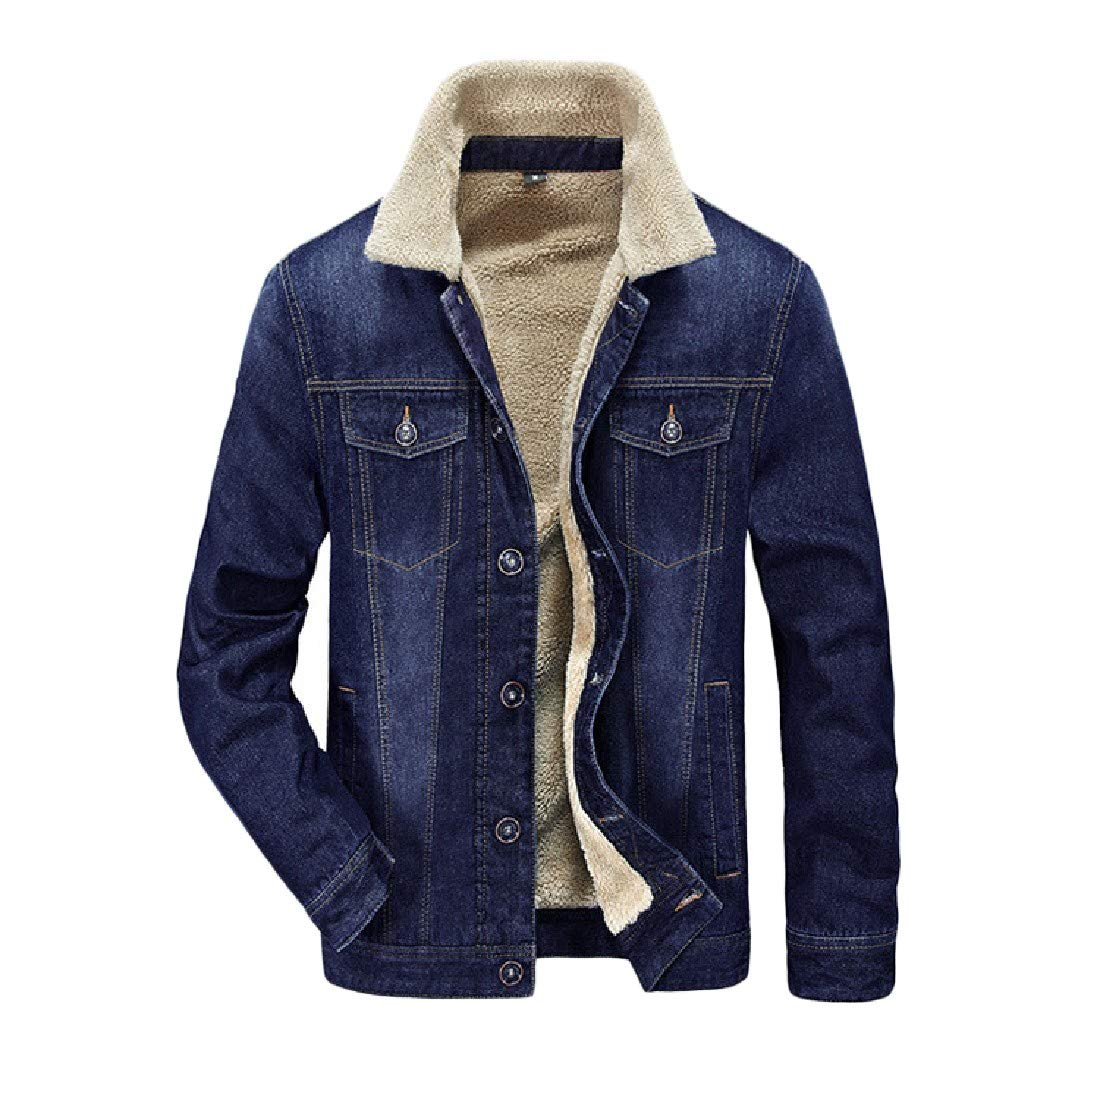 NicellyMen Autumn Classic Army Warm Denim Overcoat Jacket